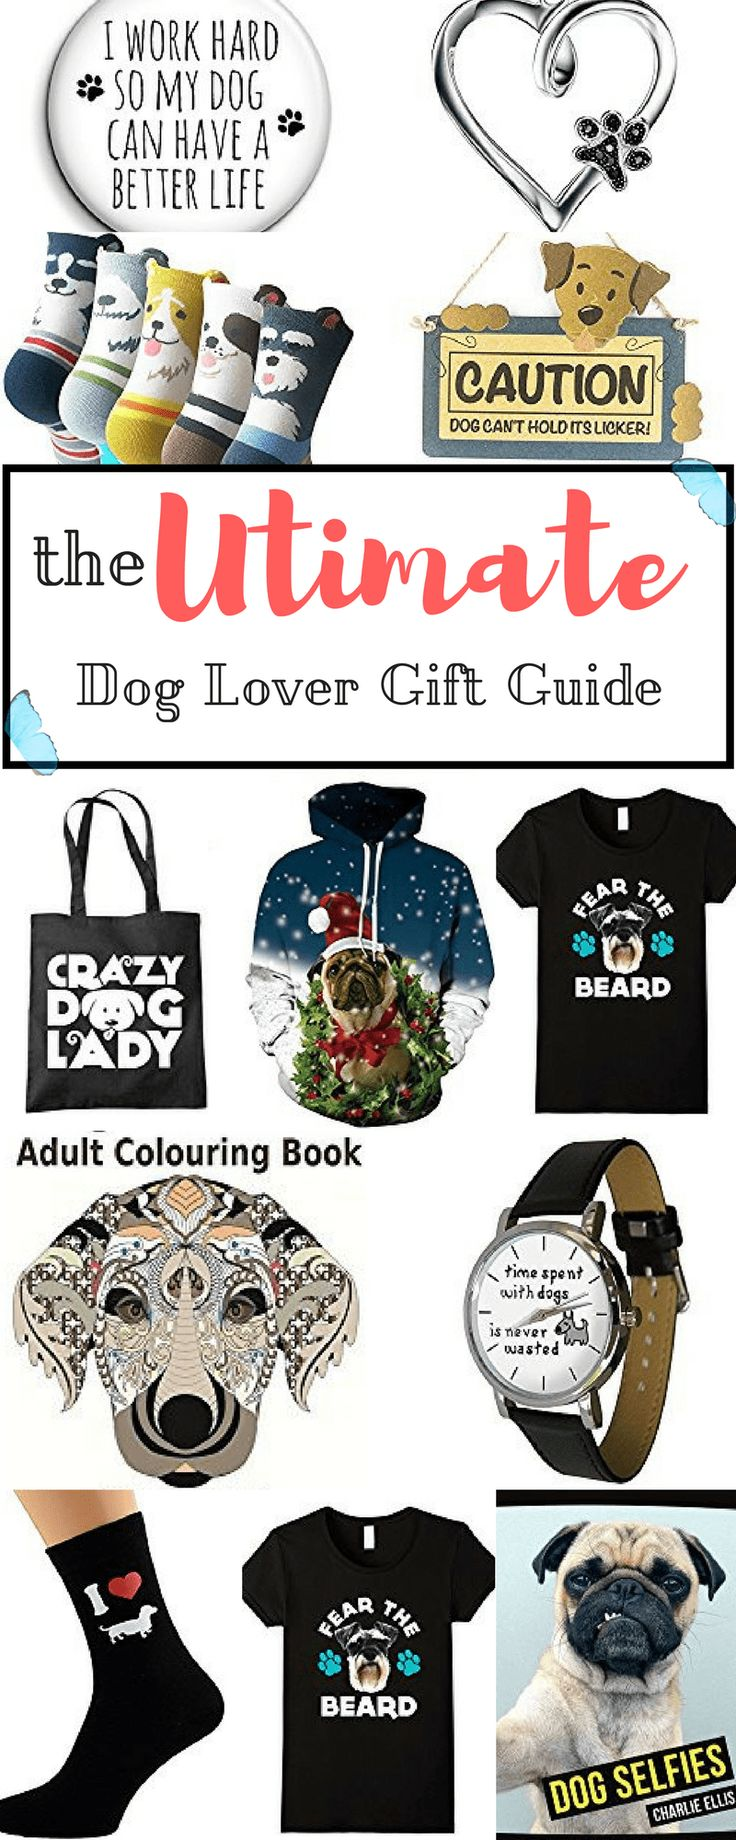 Are you a dog person in search of something awesome to give to another dog person? or even yourself, maybe? Here's the dog lover gift guide made specially for you!